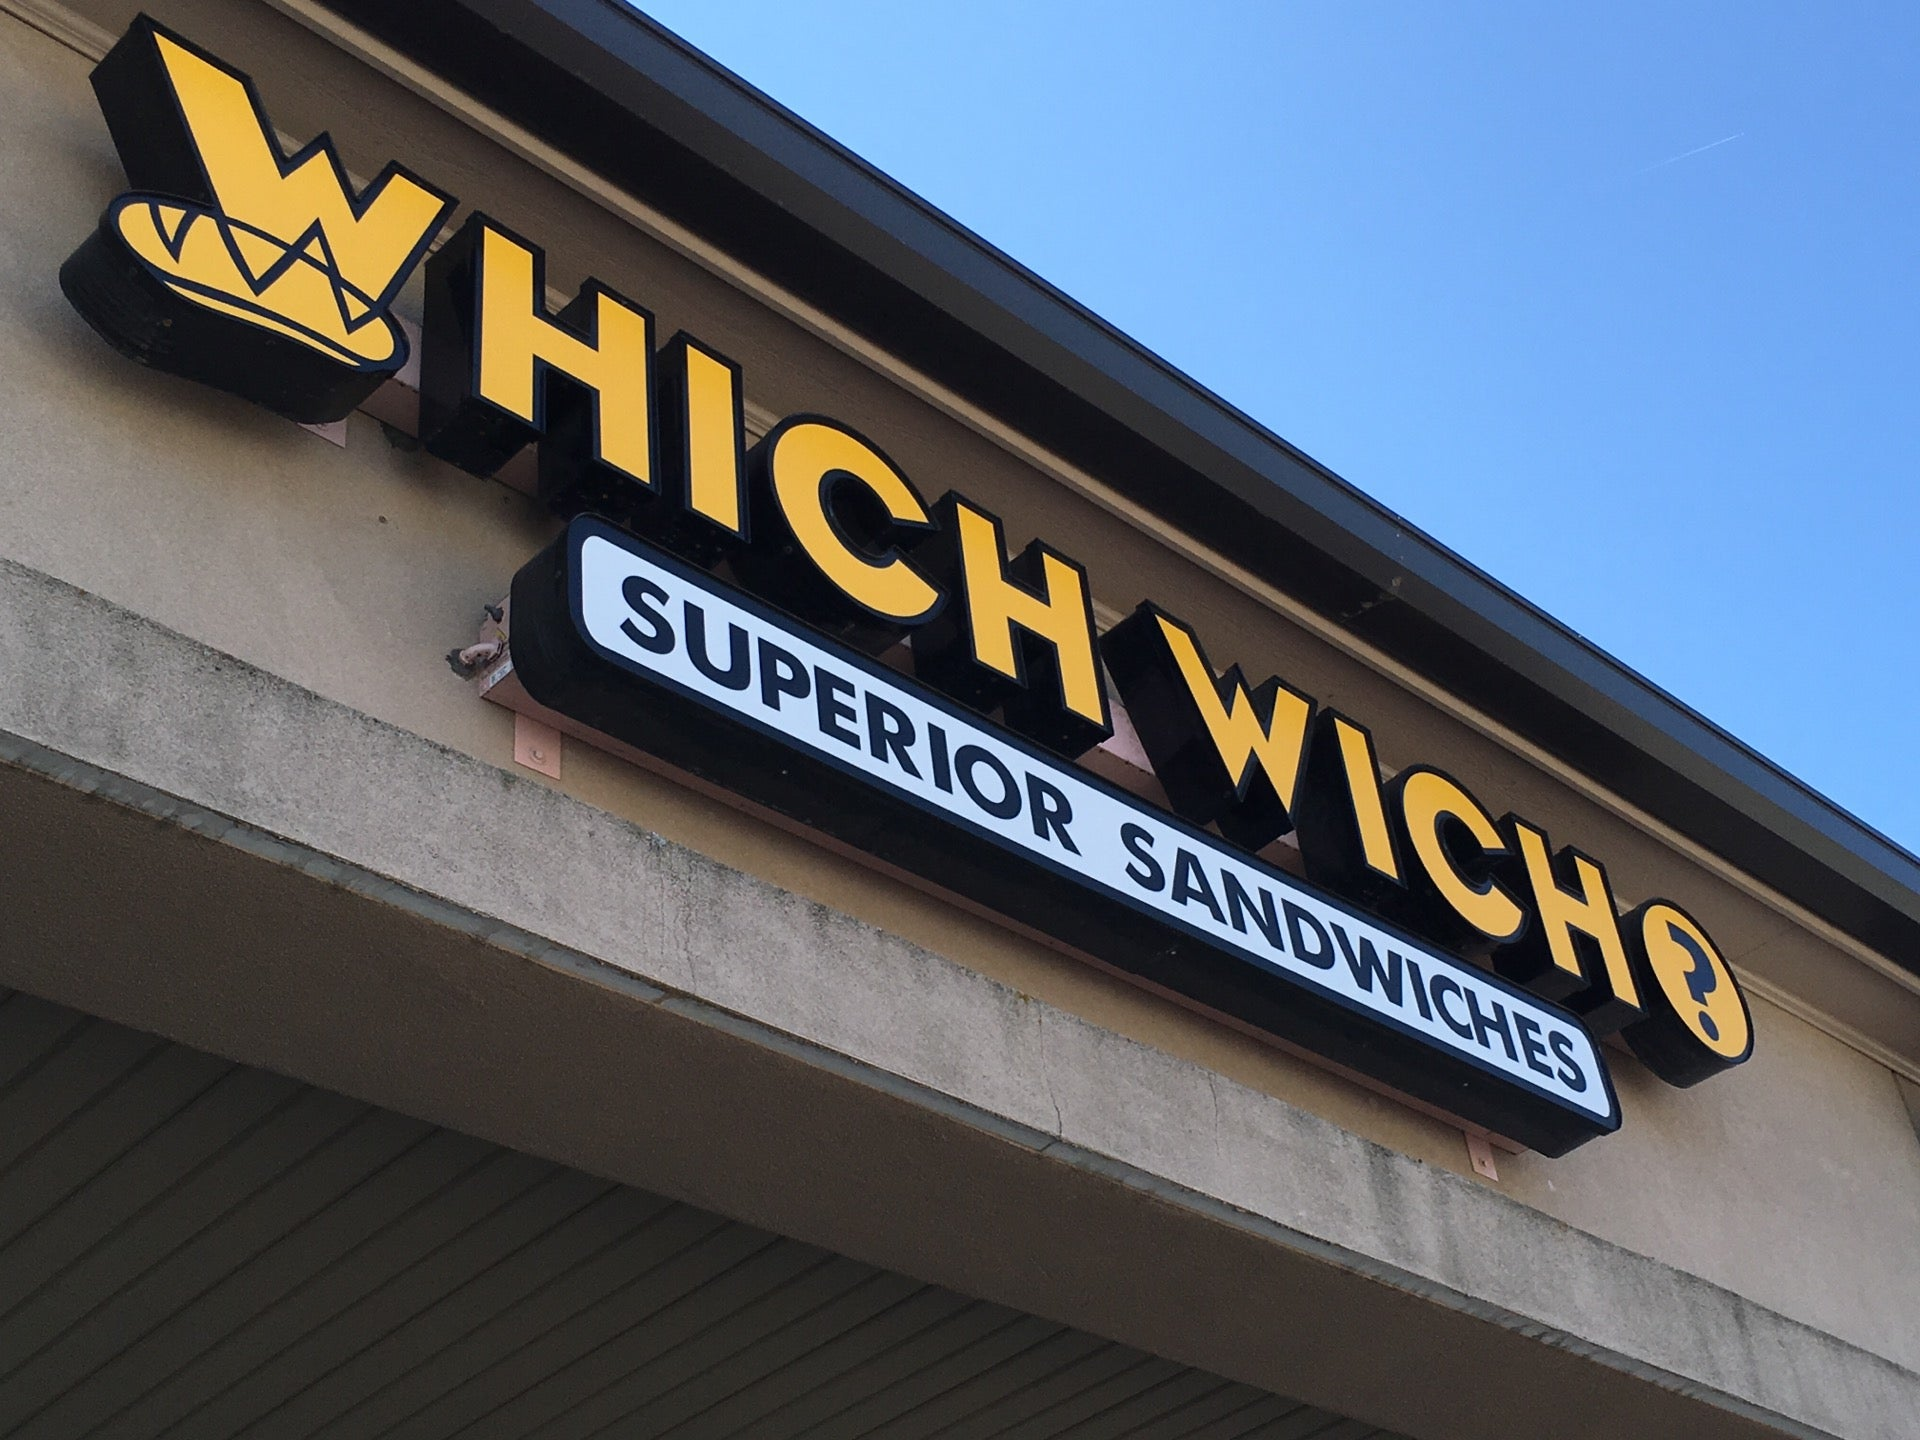 WhichWich Superior Sandwiches,